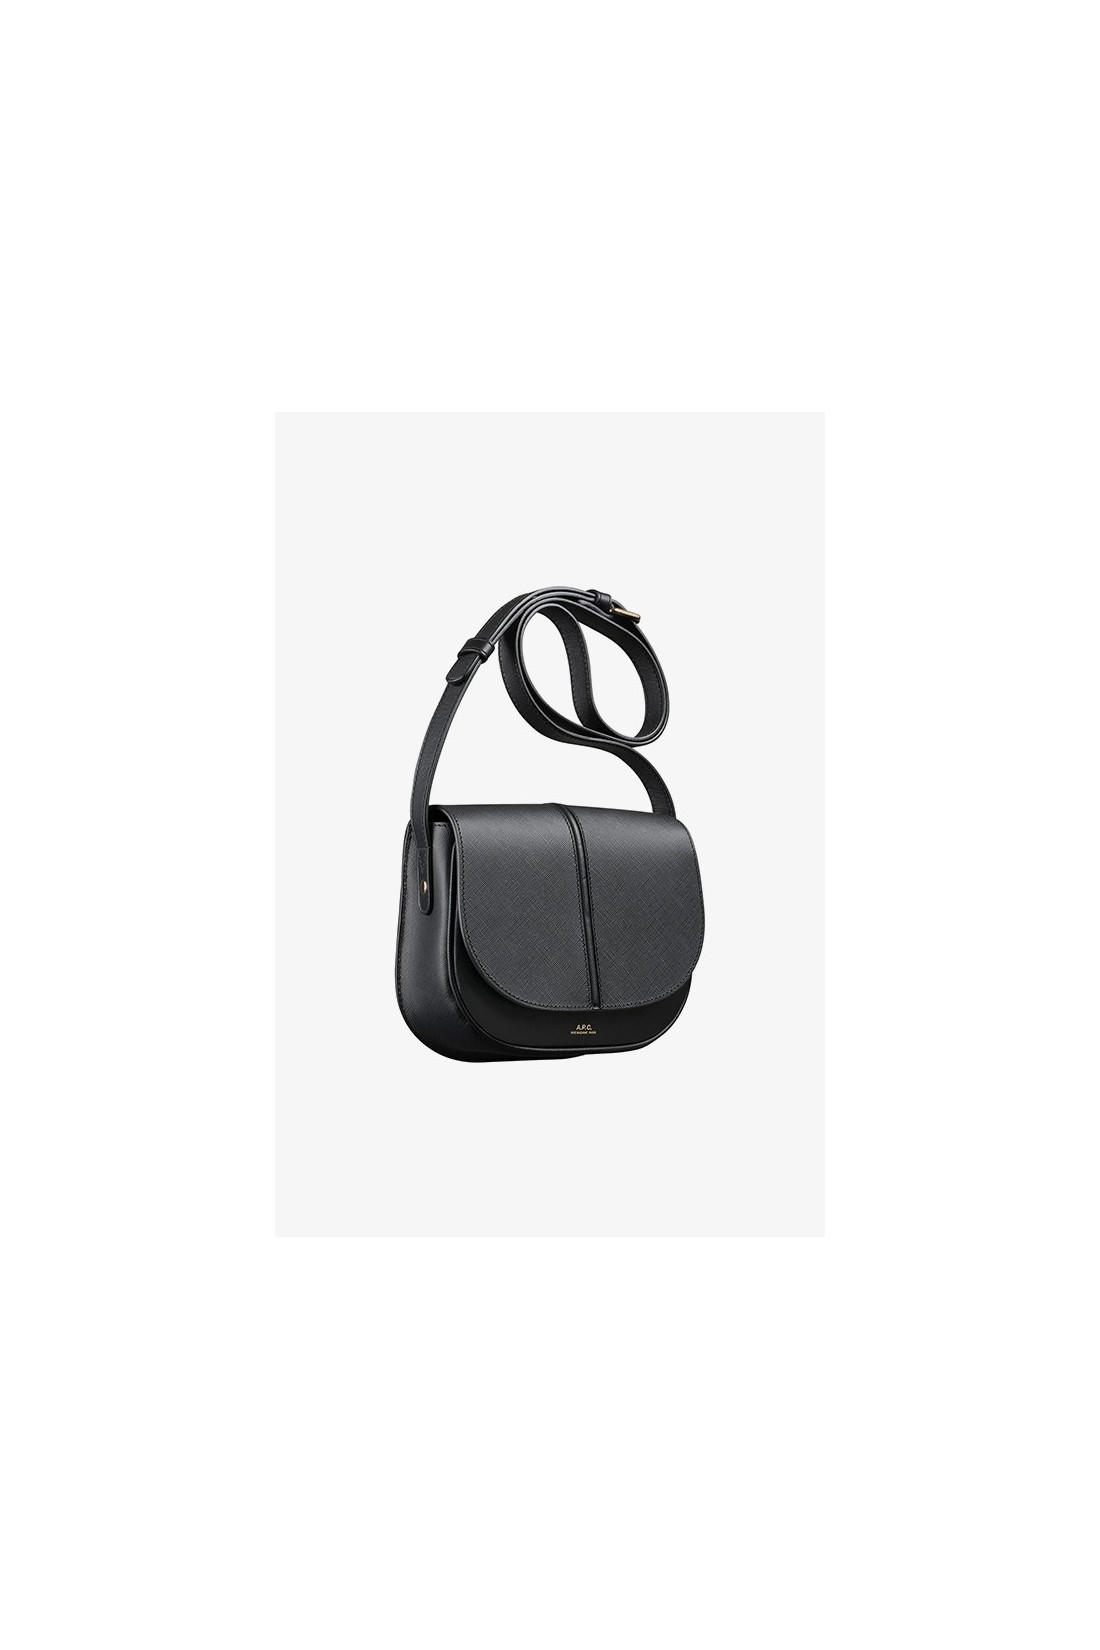 A.P.C. FOR WOMAN / Sac betty cuir embosse Noir